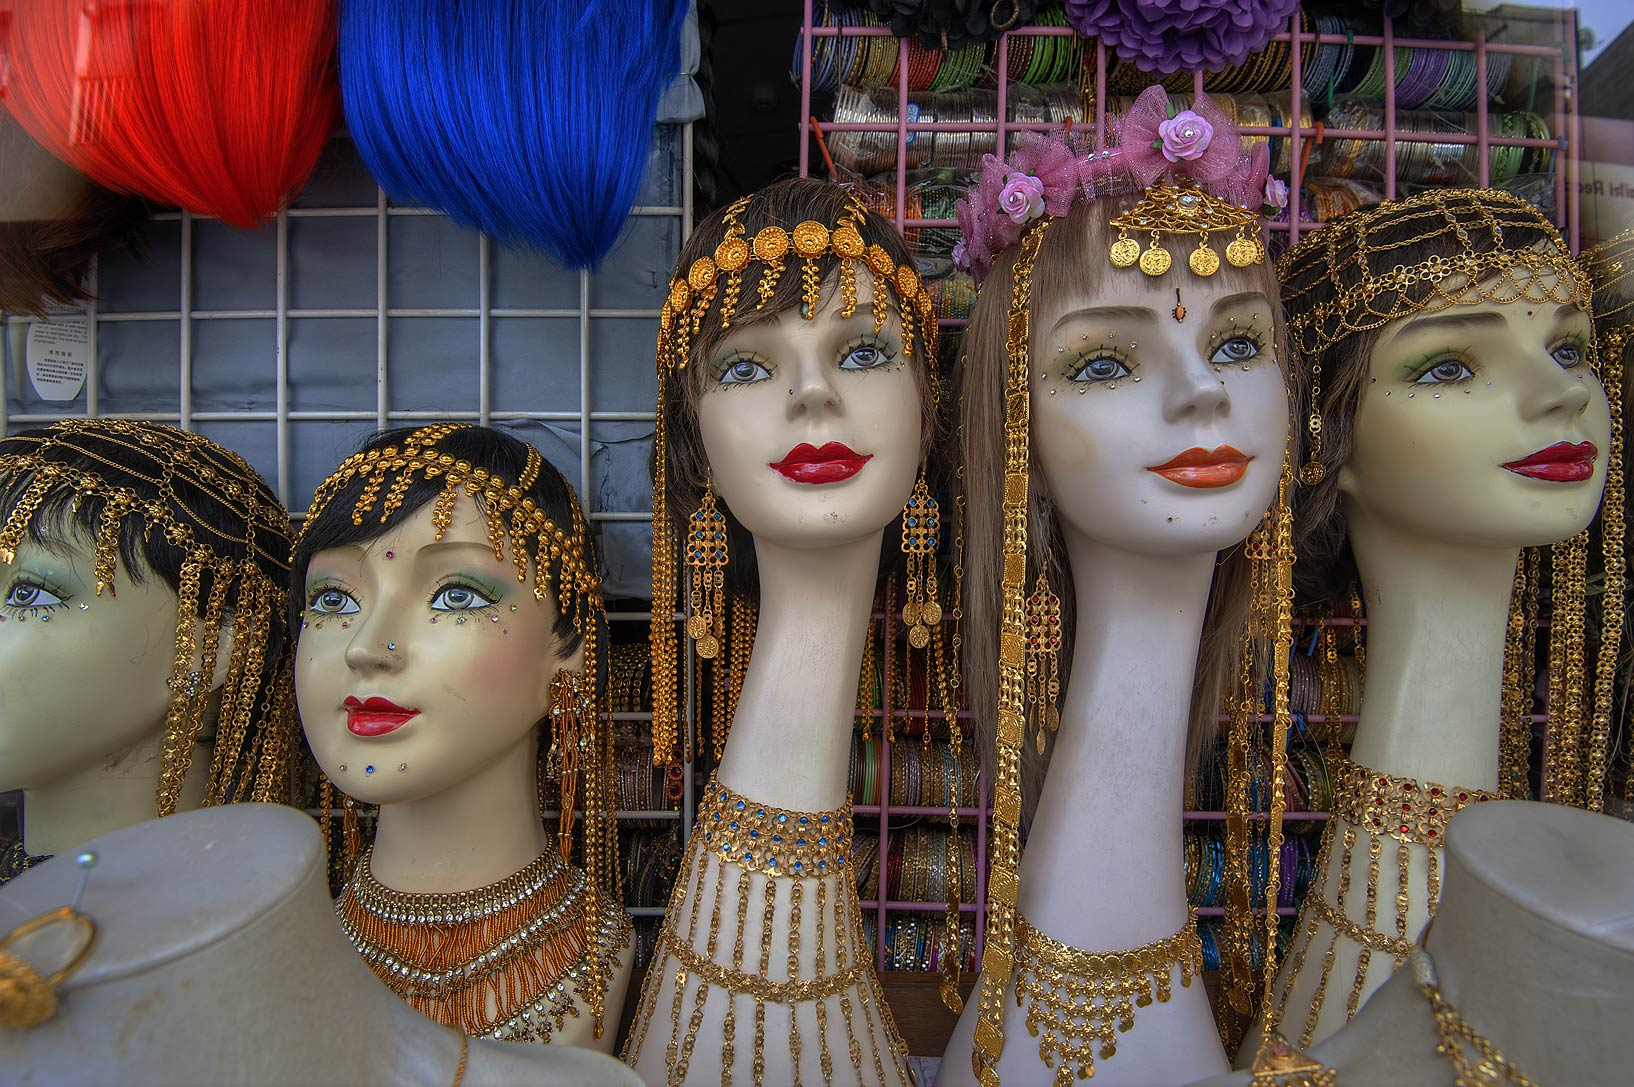 Female mannequins on display in a jewelry shop in Central Manama. Bahrain